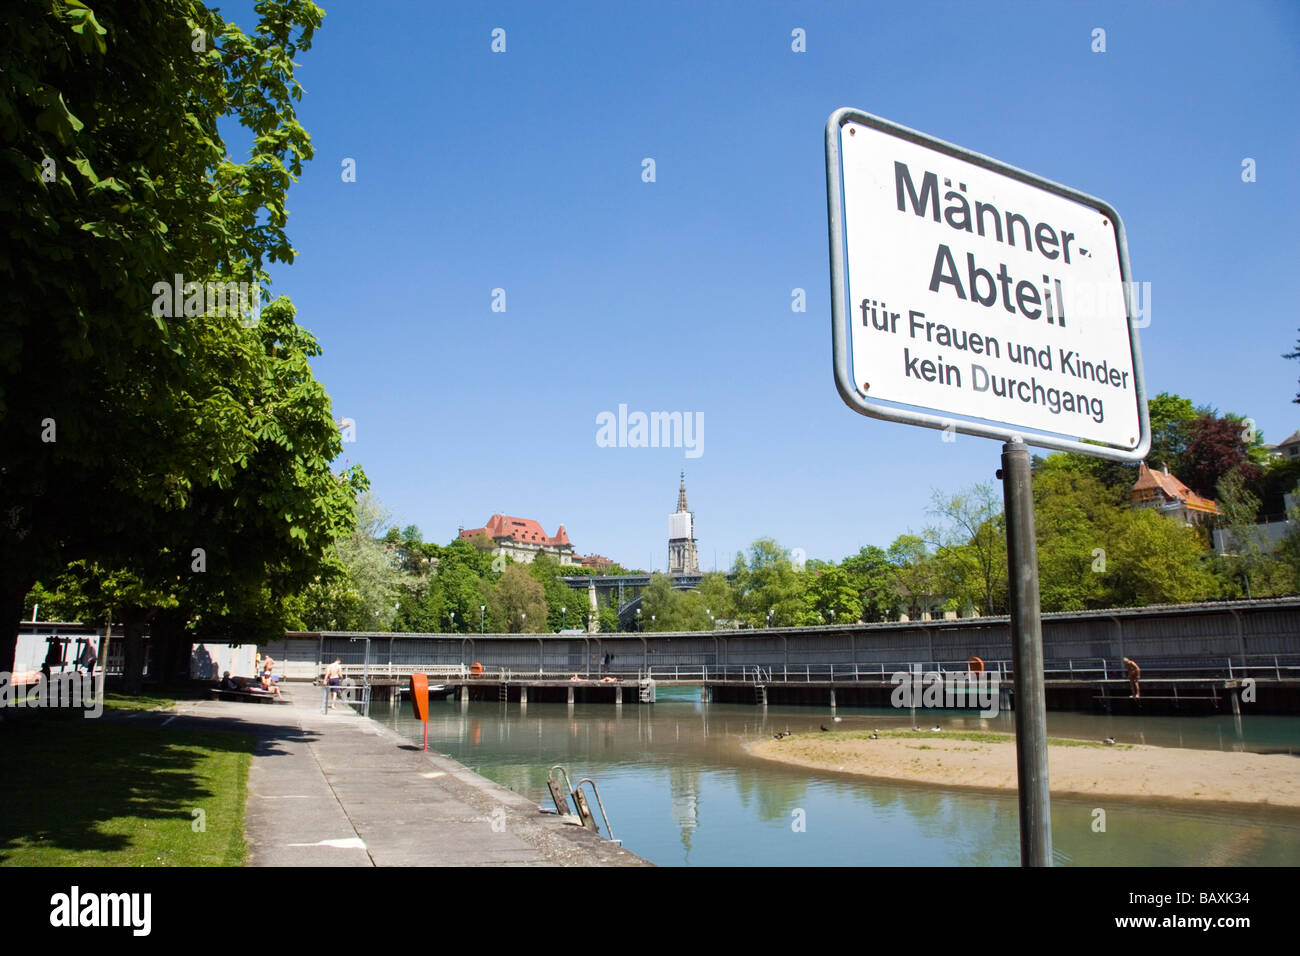 Marzili open-air pool, Male pool, Aare, Old City of Berne, Berne, Switzerland - Stock Image